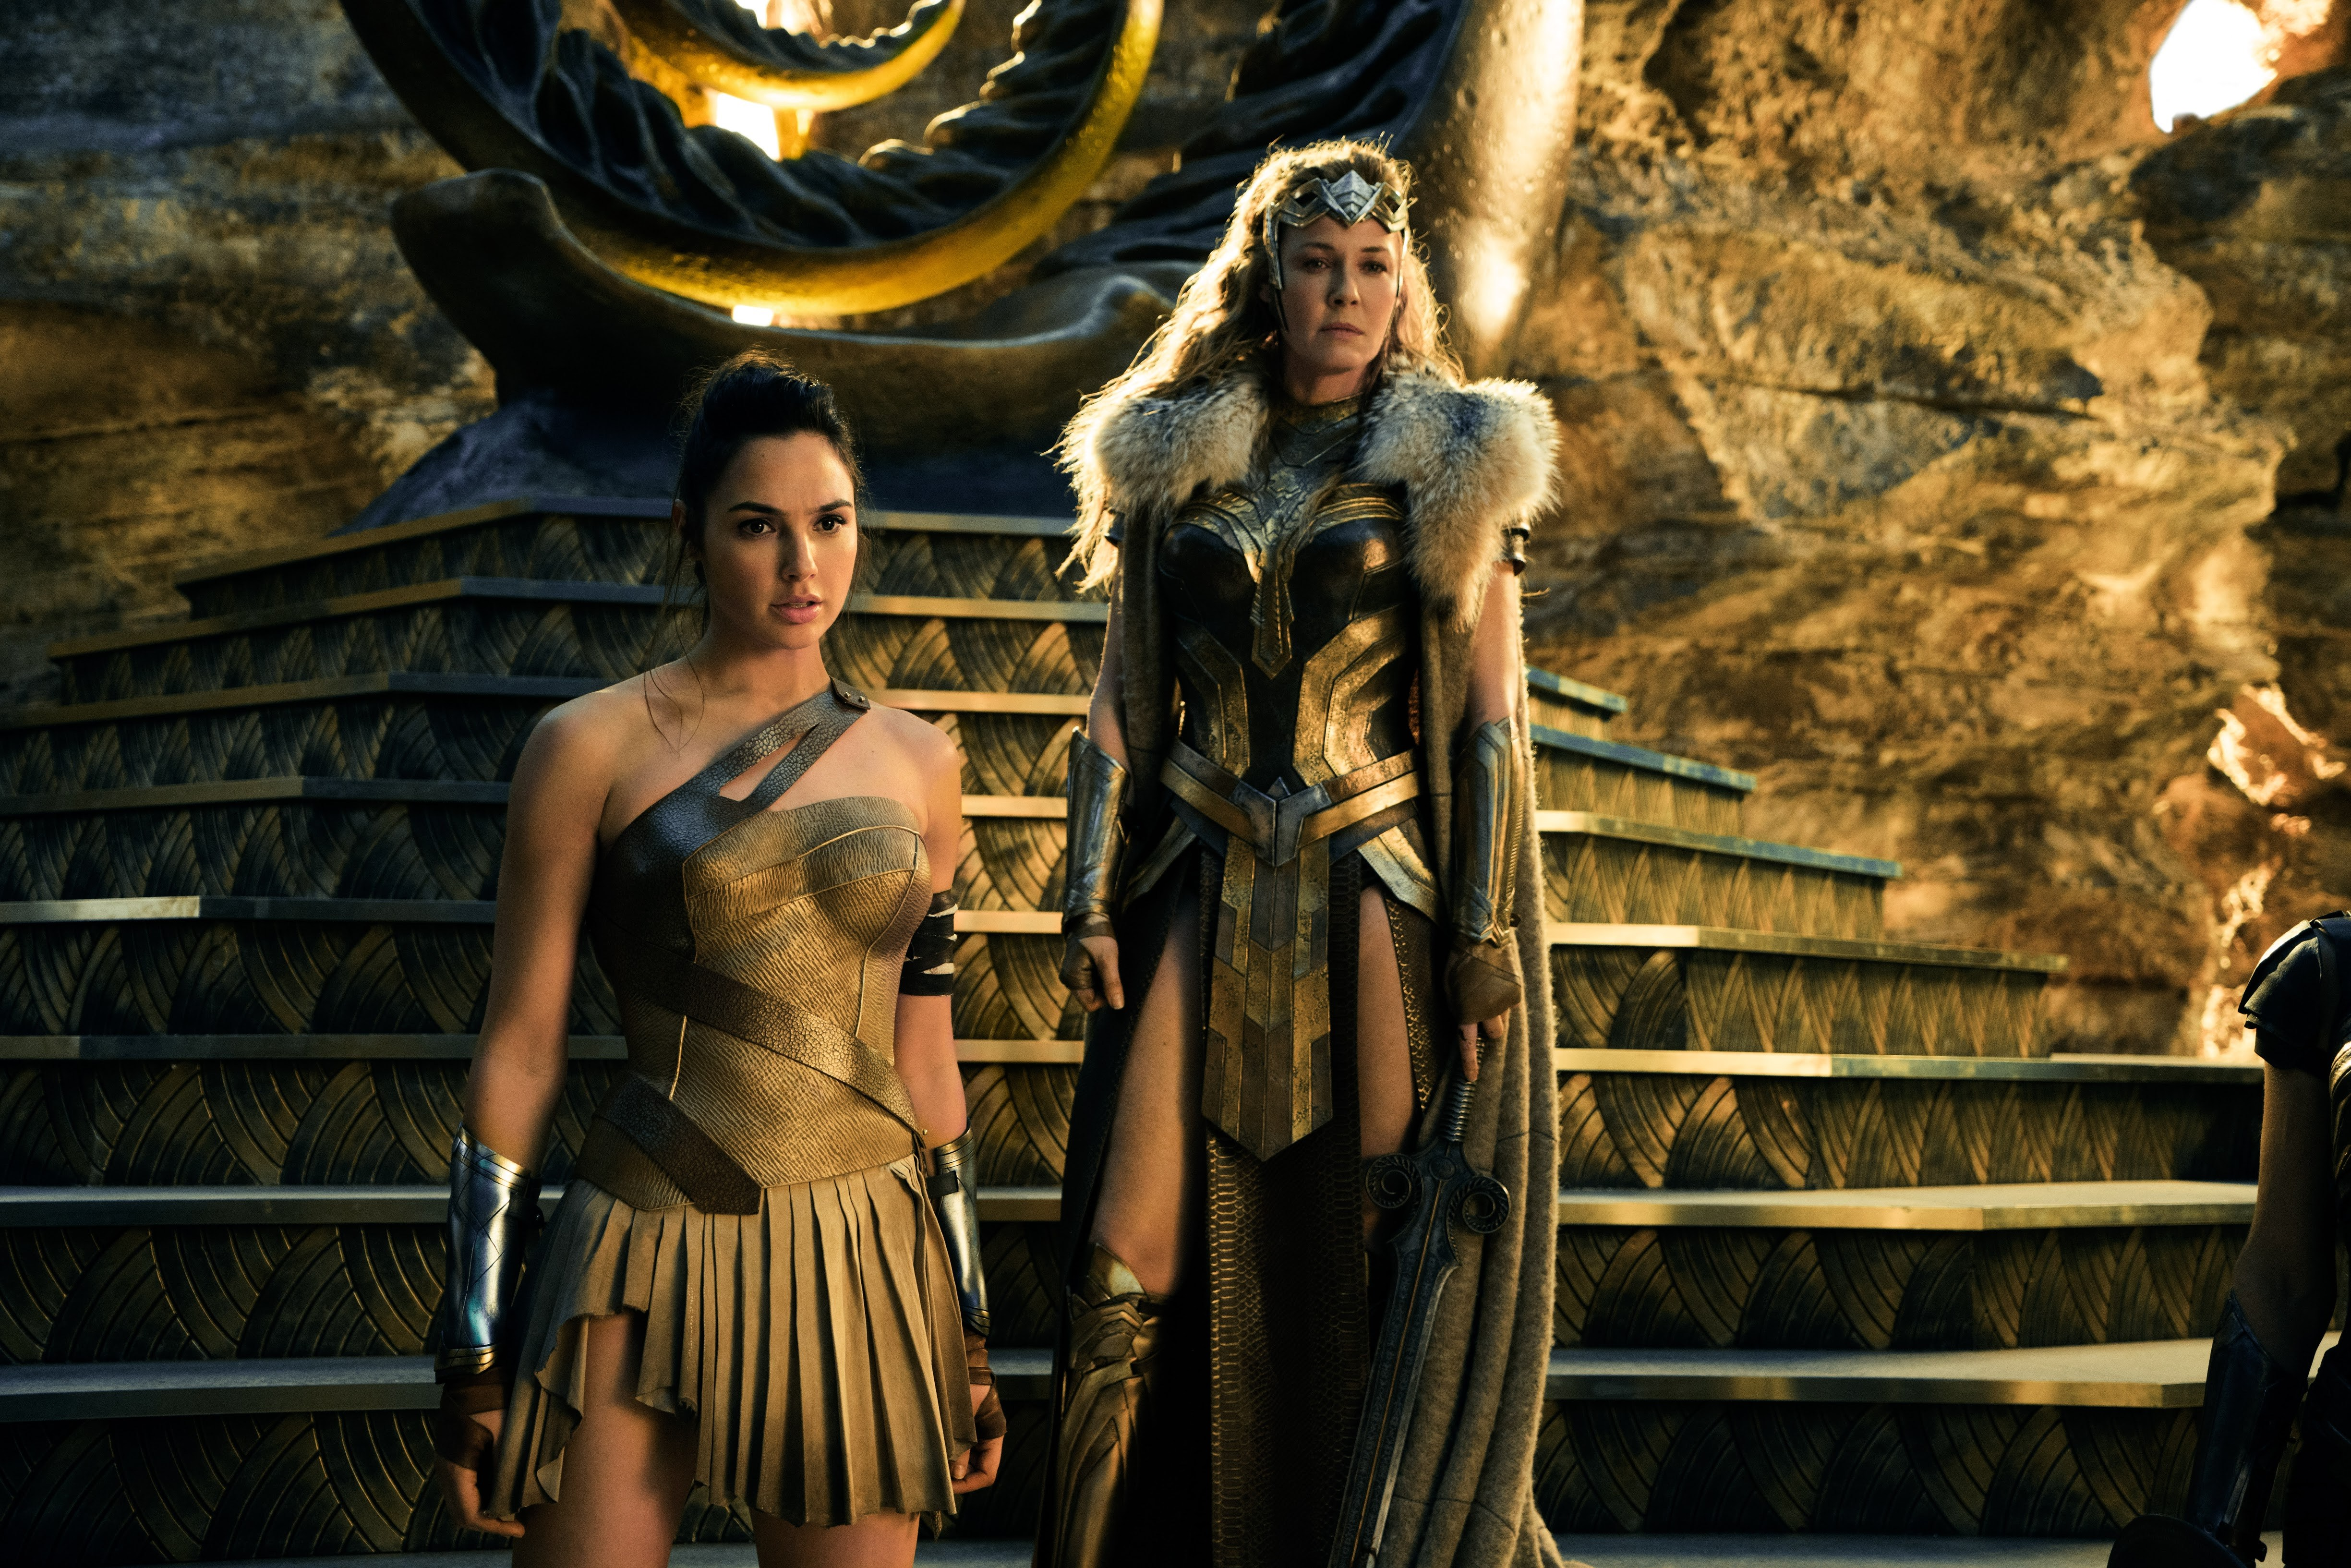 Wonder Woman and her mom Hippolyta. Just hanging out.